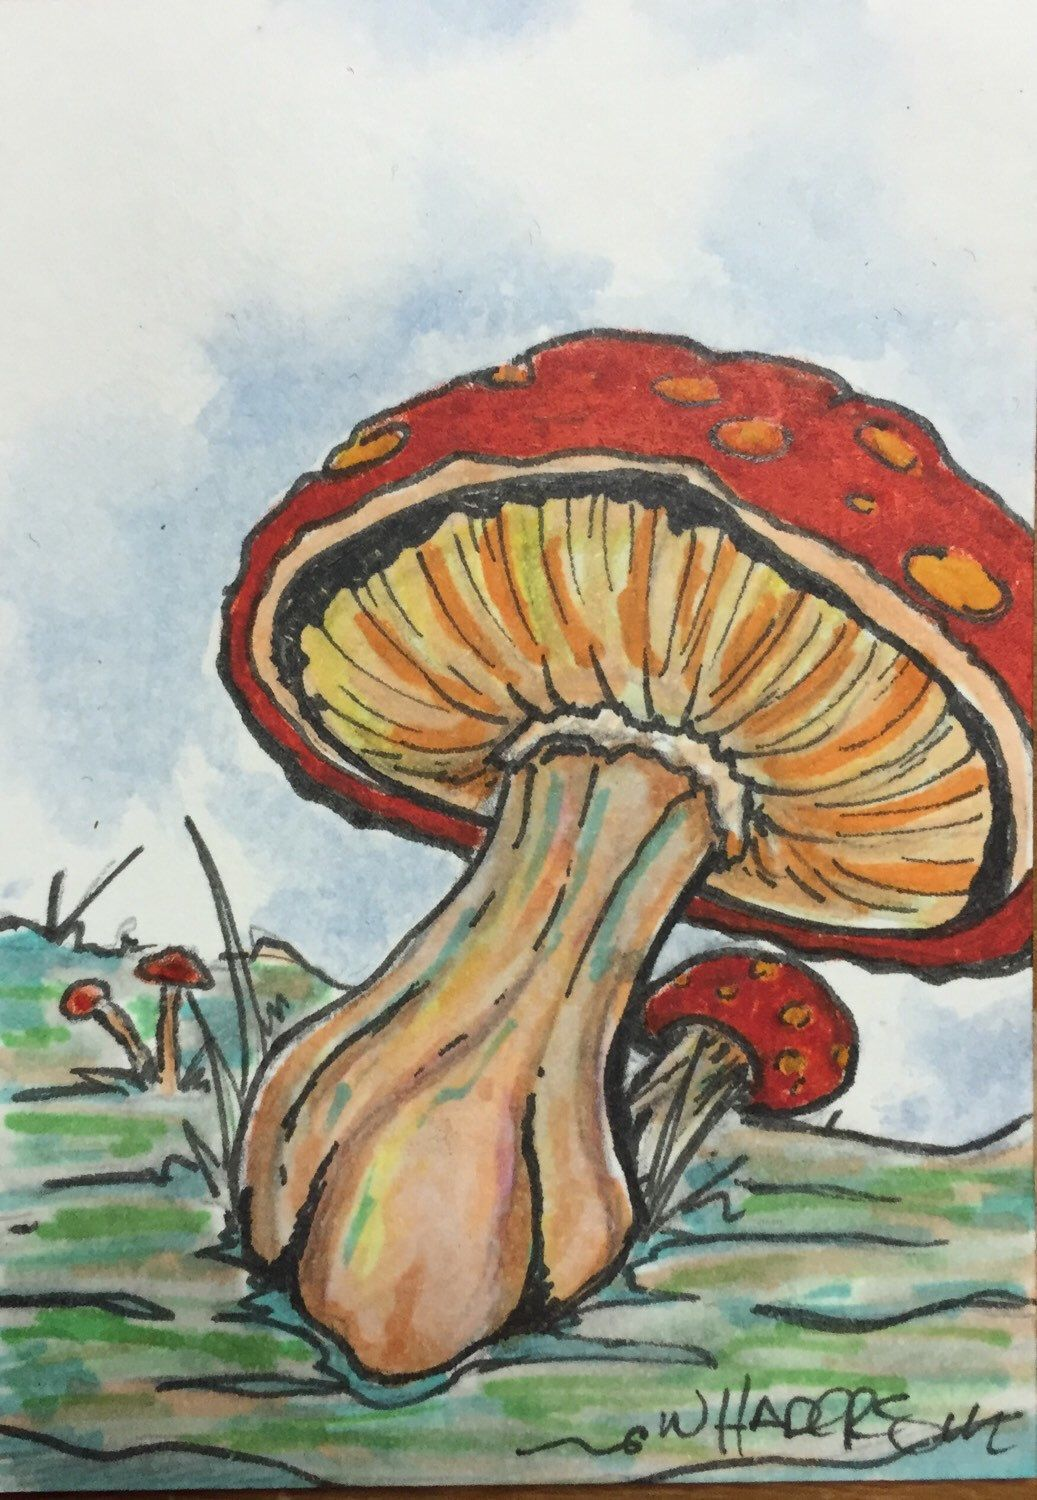 Original ACEO Art Card Mushroom Magic by William Haders by CuriosityCrate6 on Etsy https://www.etsy.com/listing/251928642/original-aceo-art-card-mushroom-magic-by